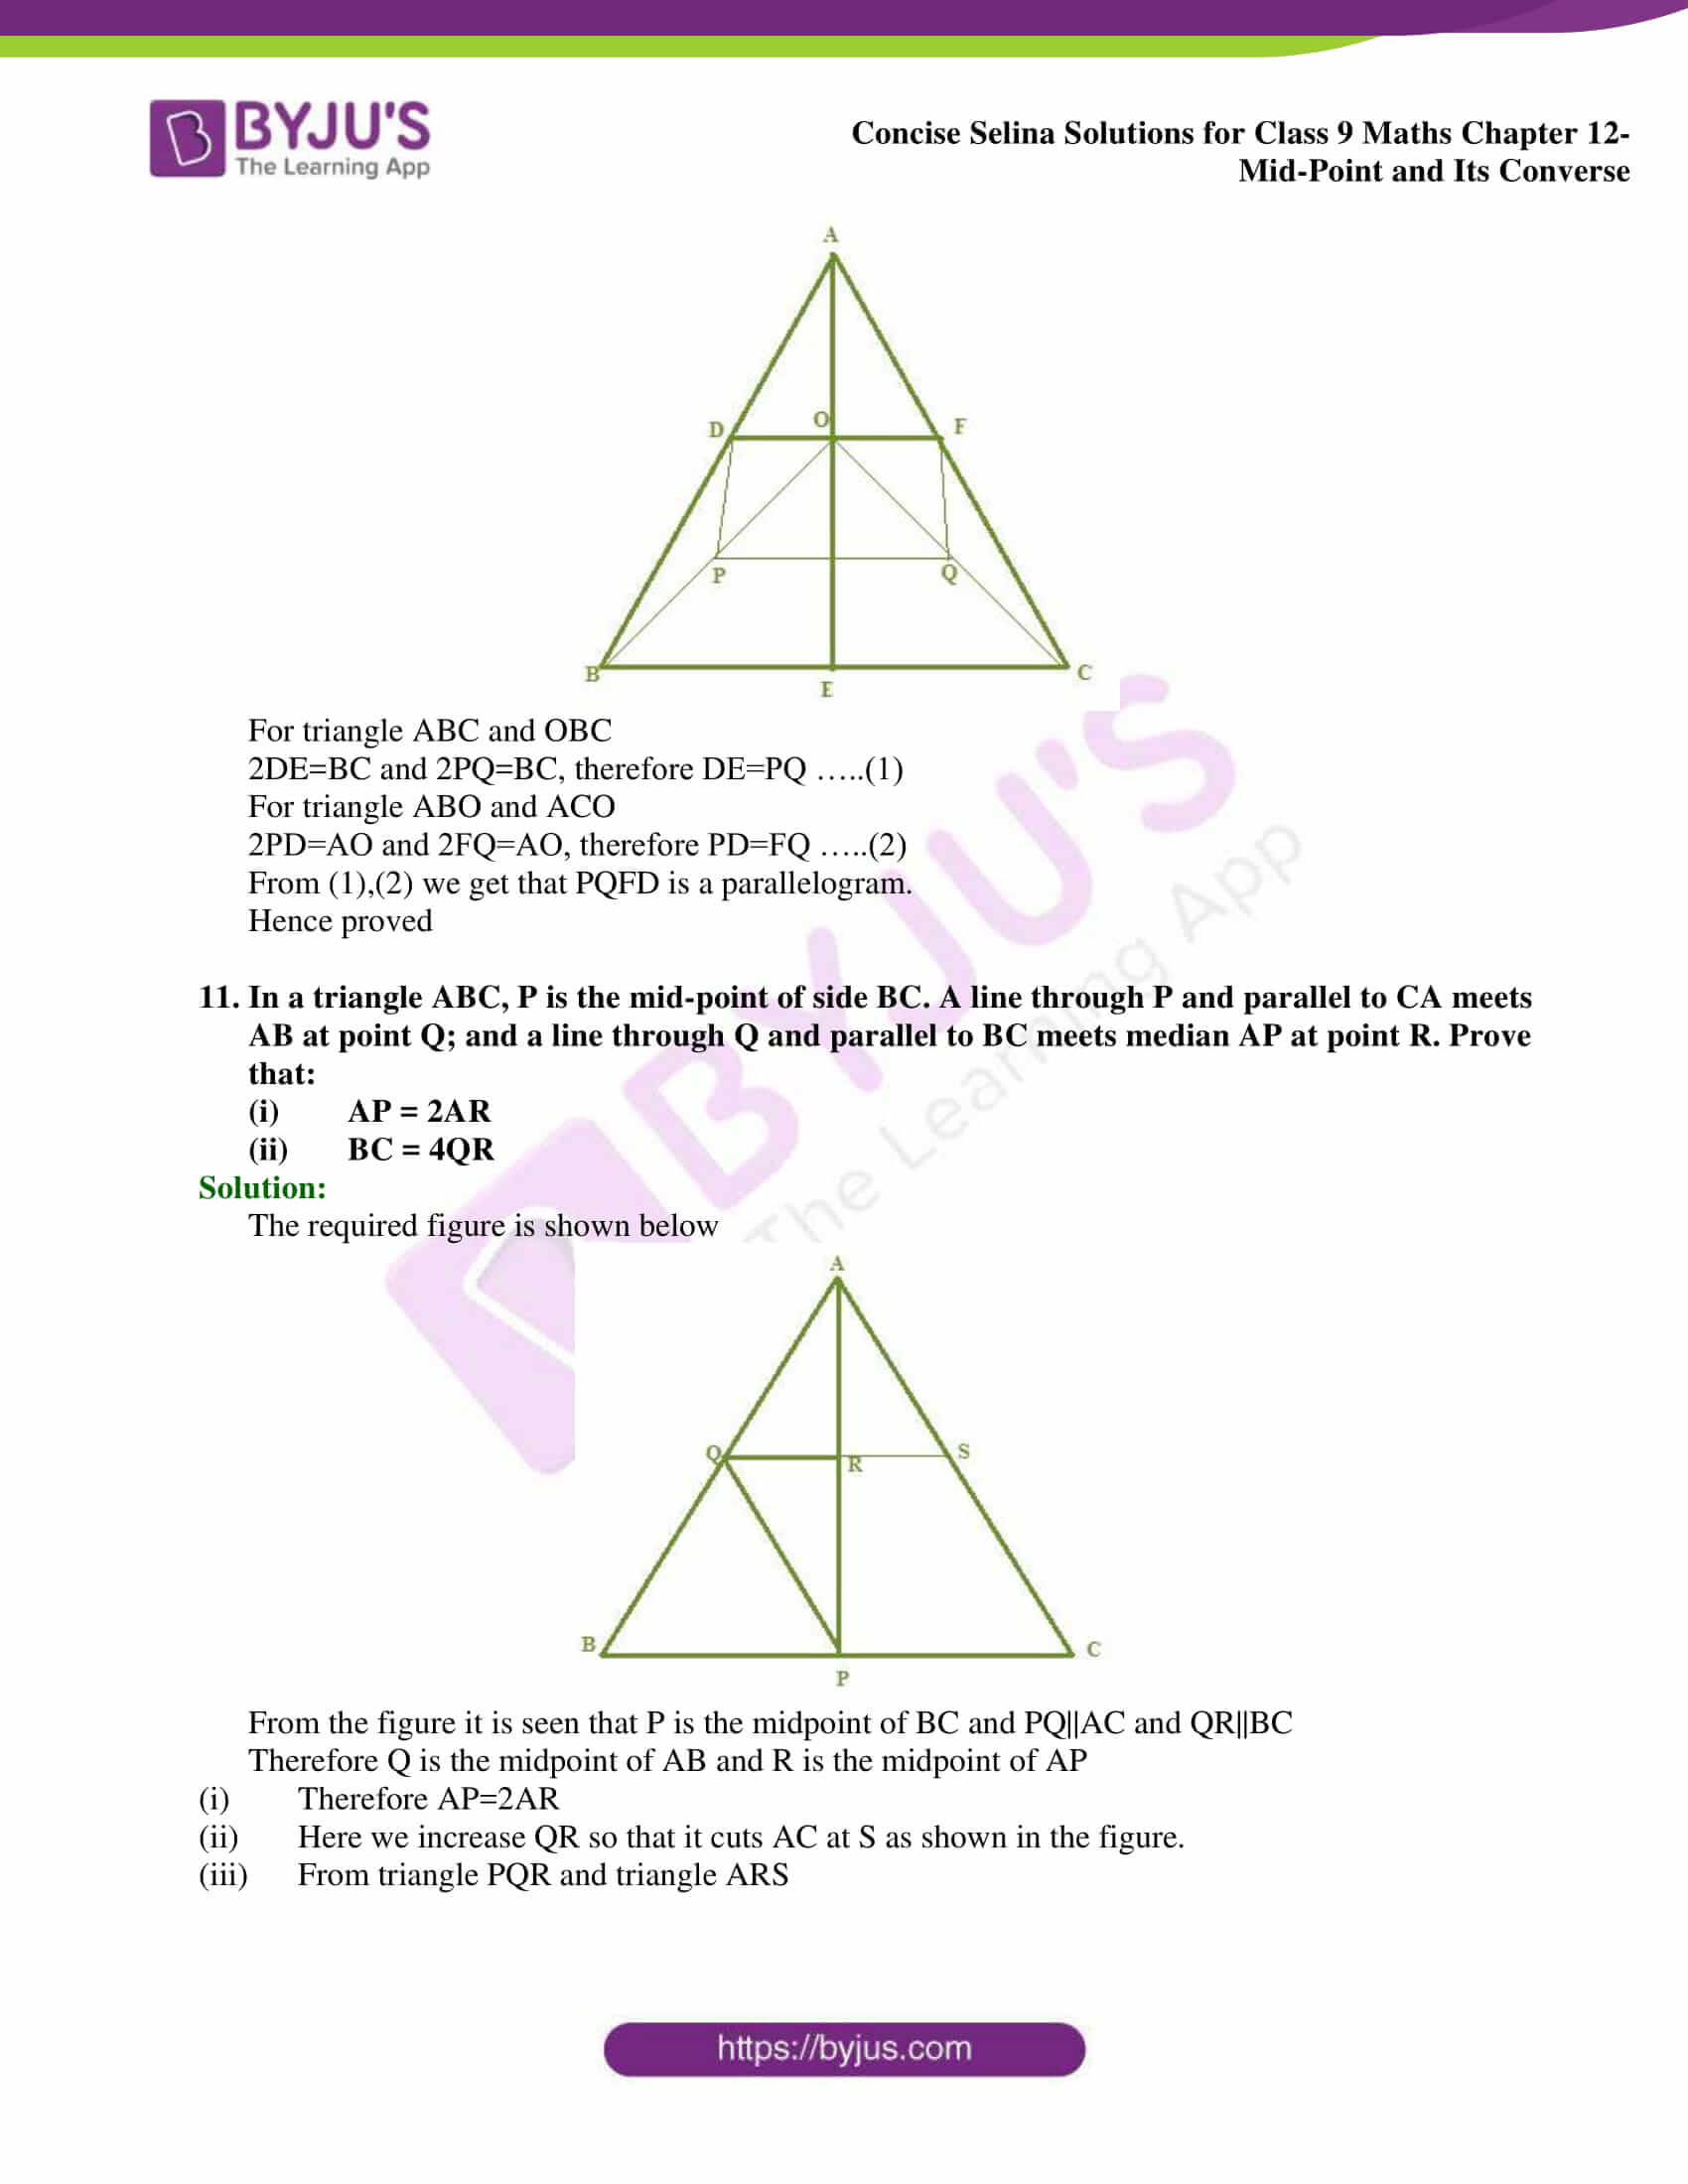 selina Solutions for Class 9 Maths Chapter 12 part 07